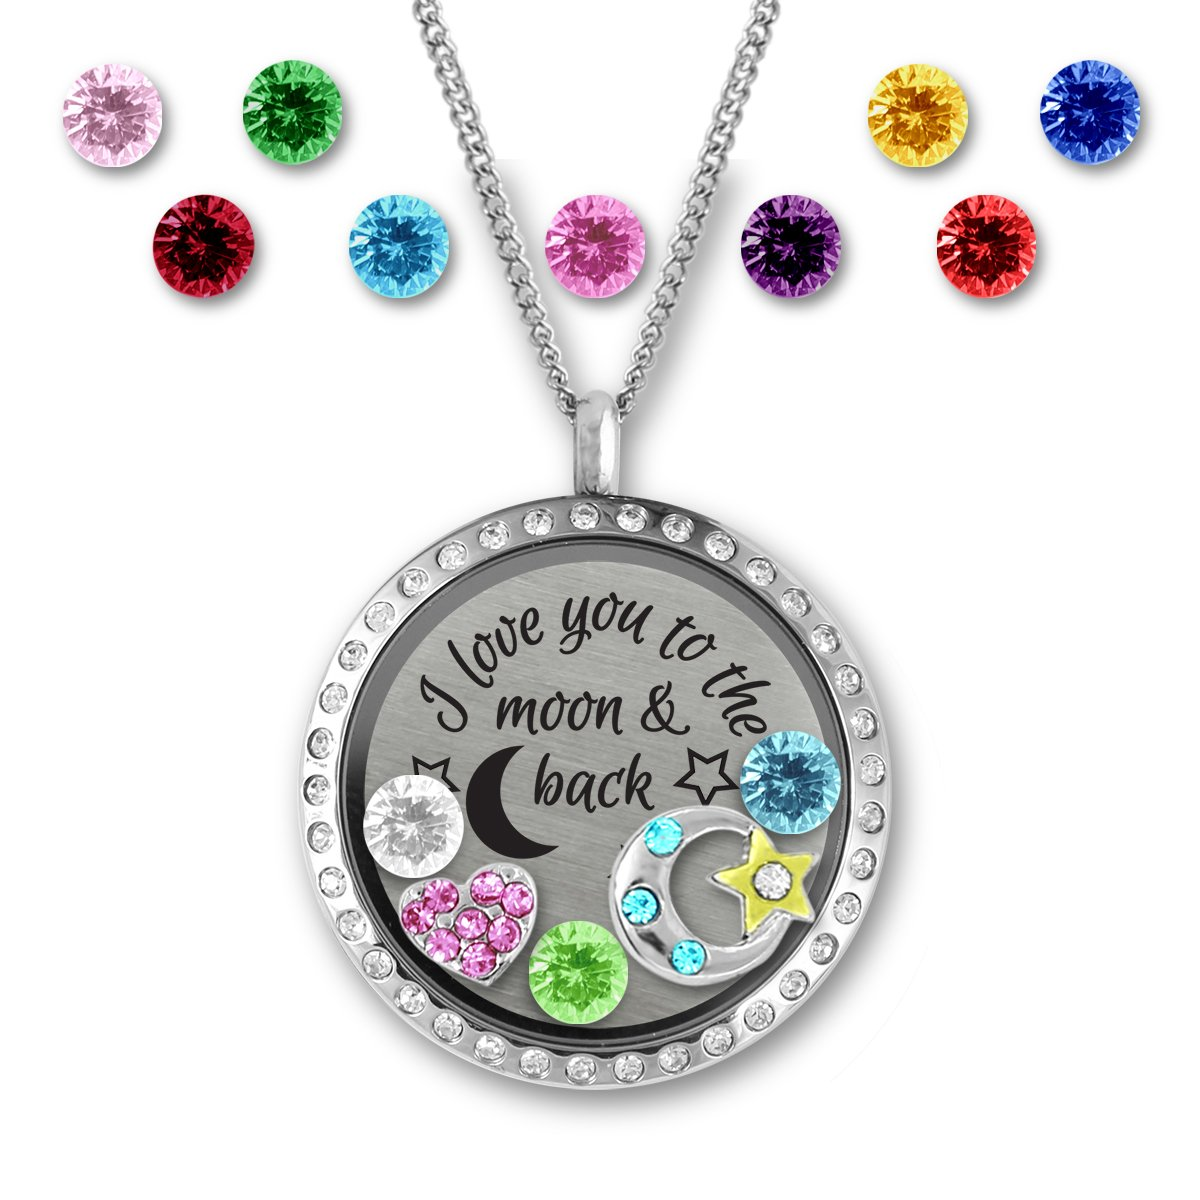 Birthstone necklace for grandmother